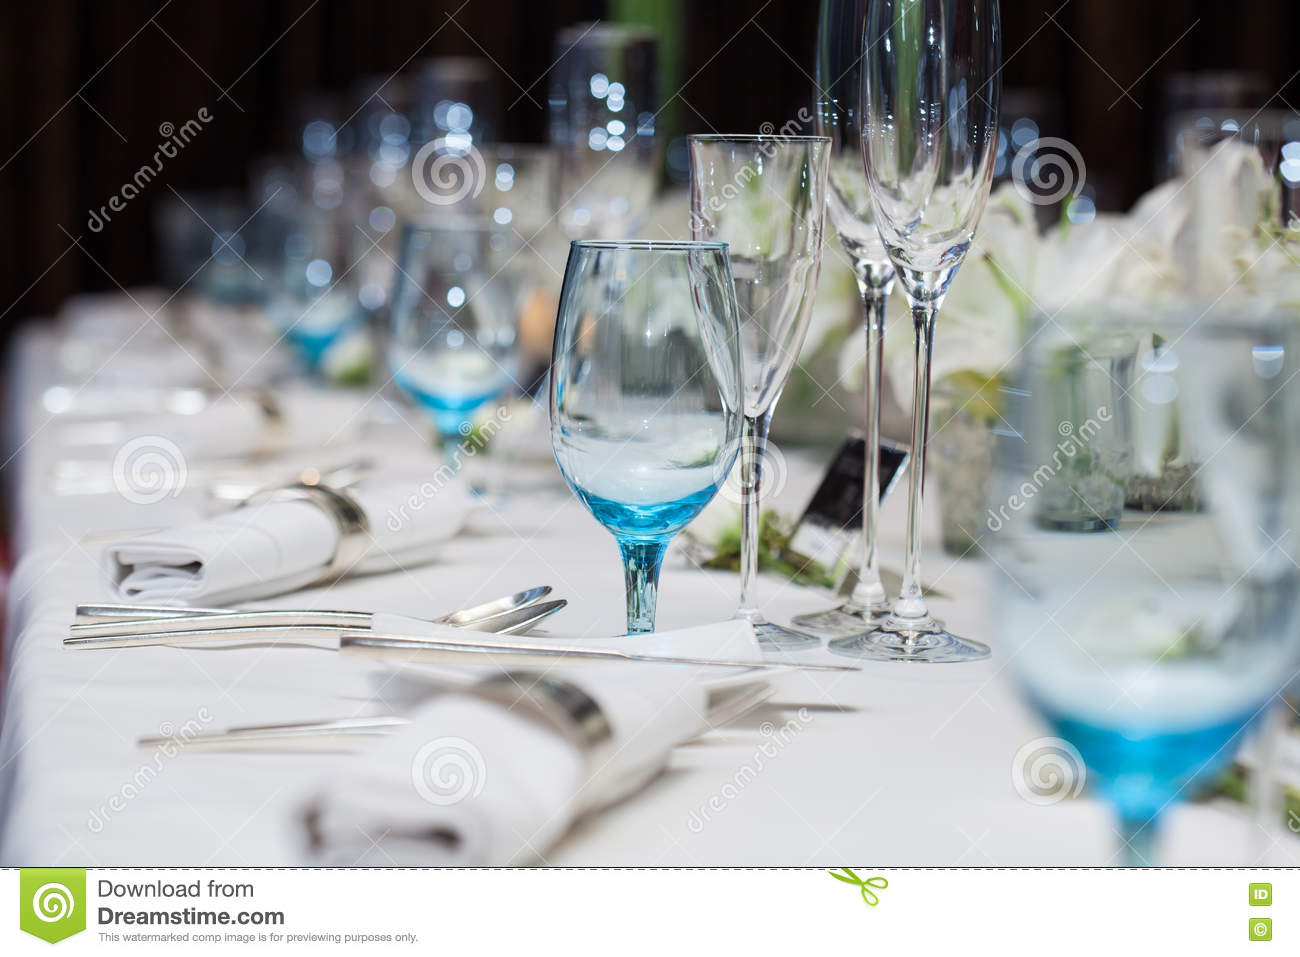 Set Up Wine Glass On The Table For Dinner Stock Image - Image of ...